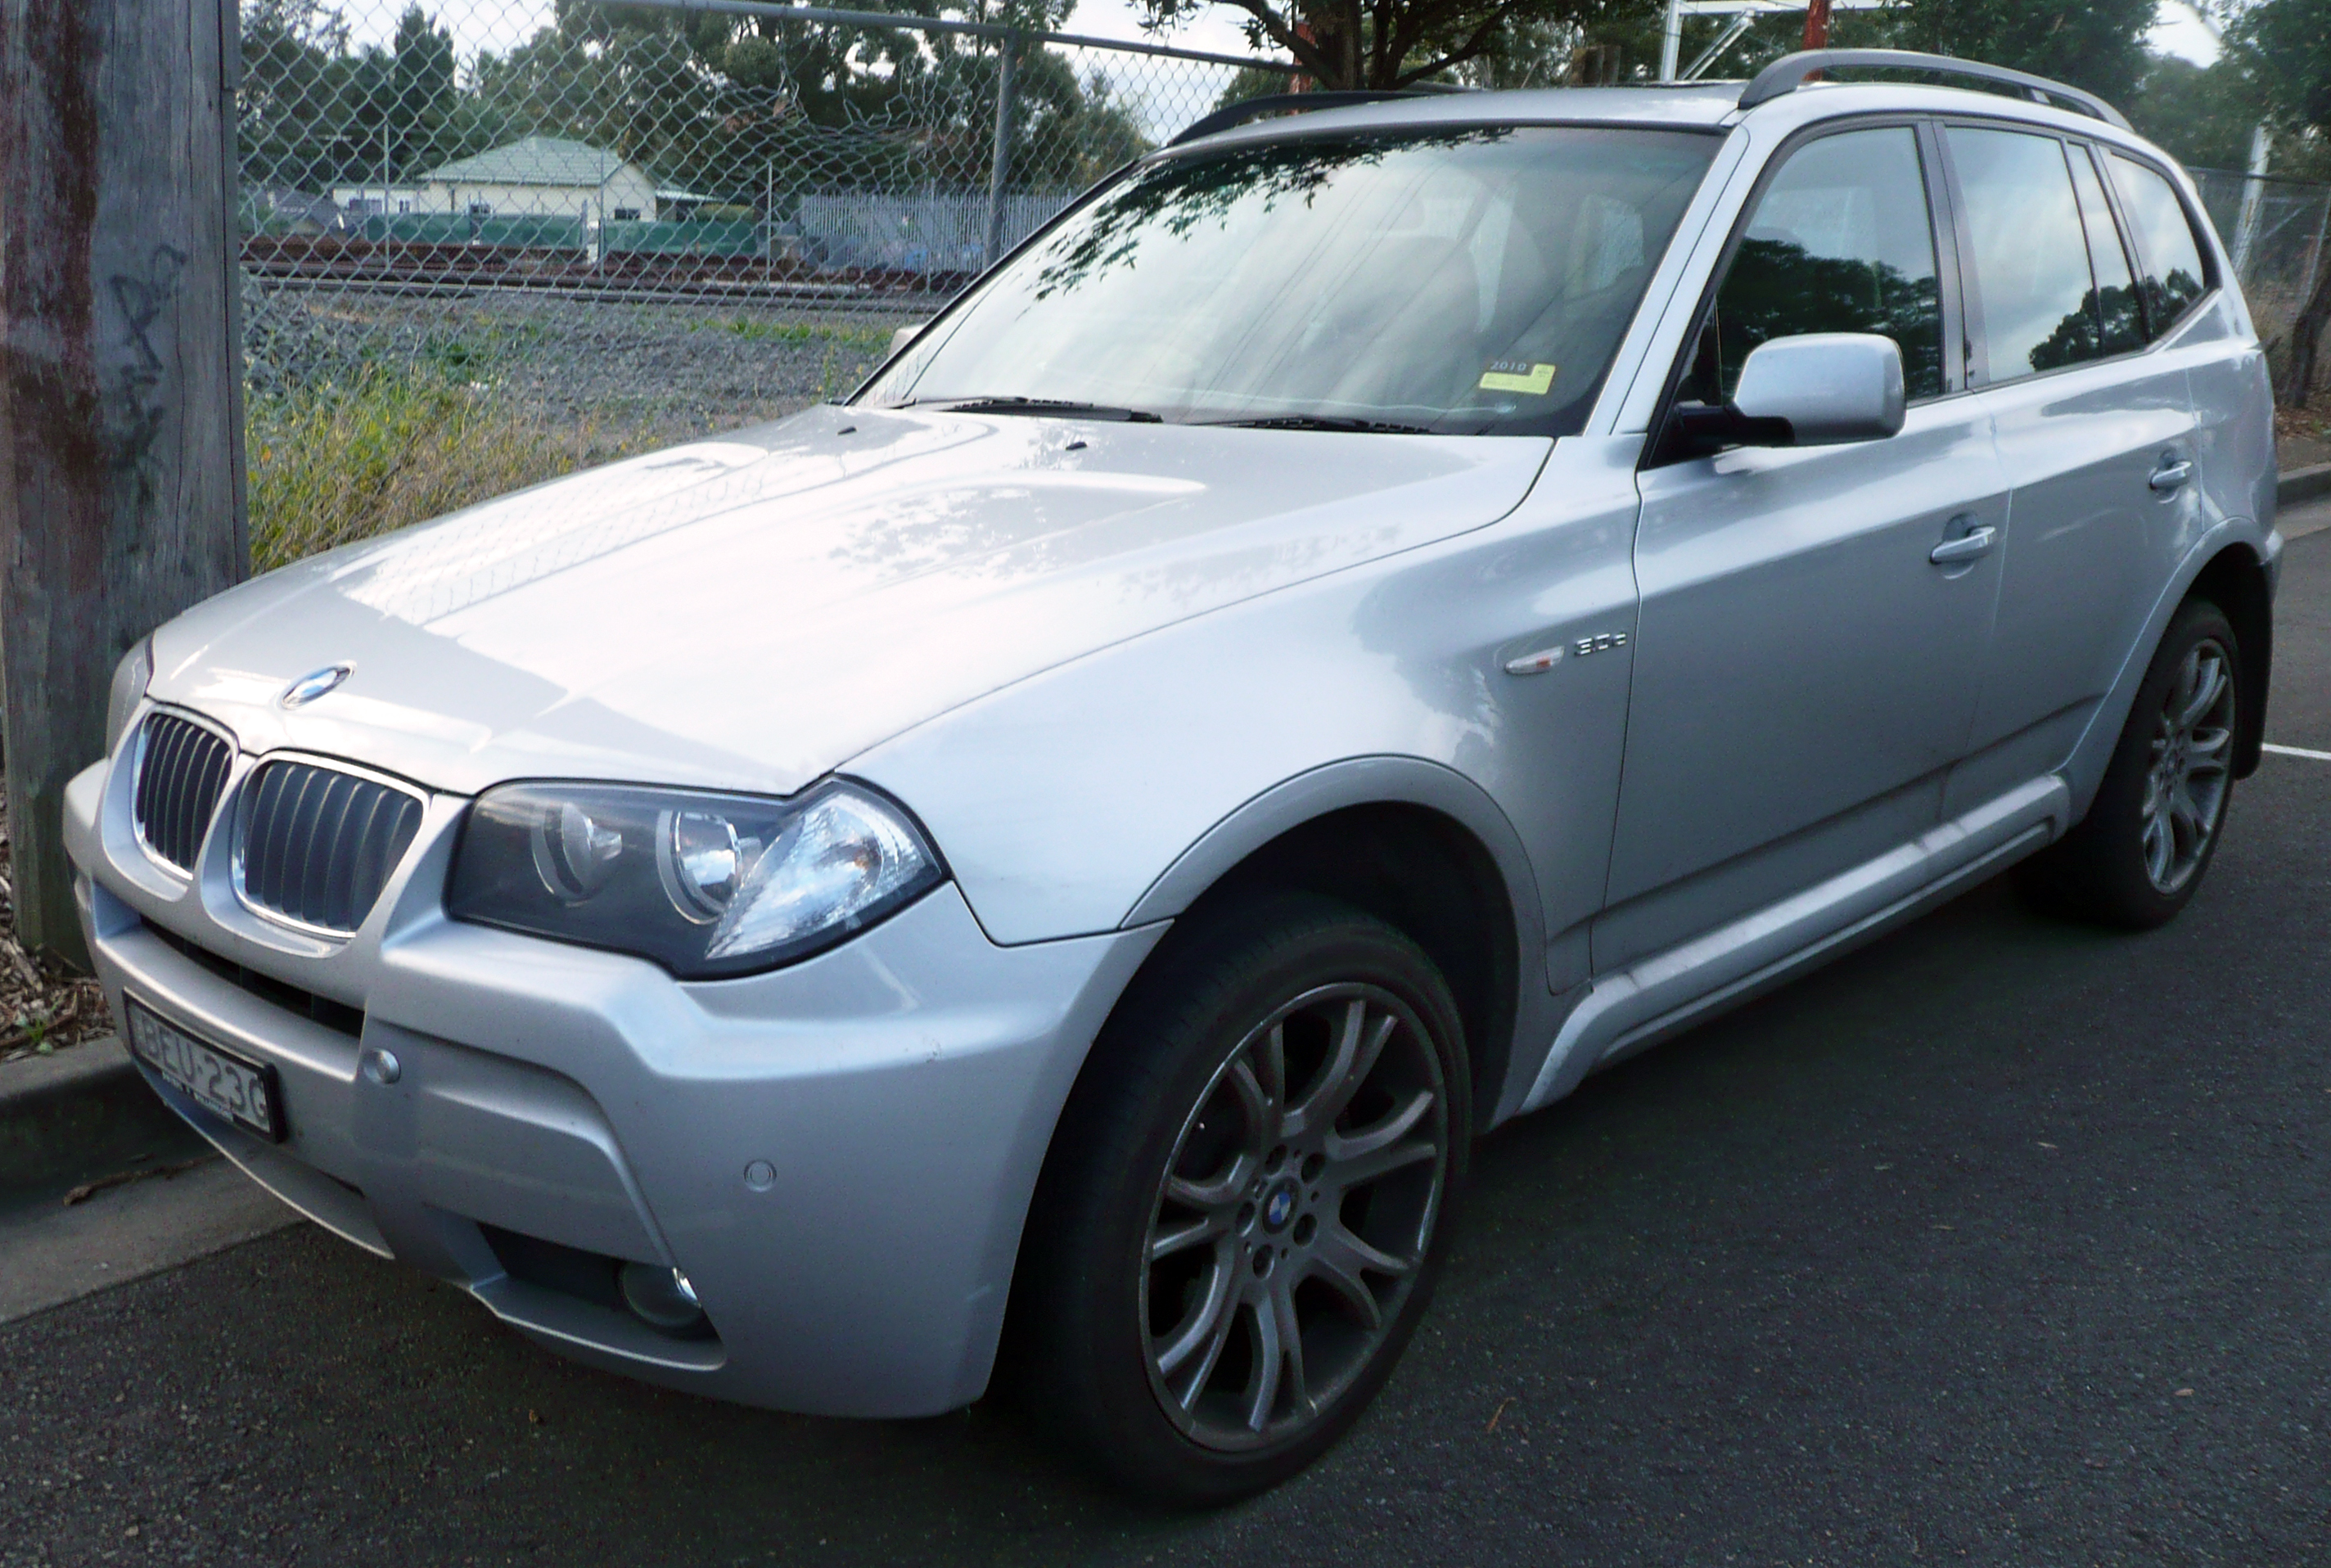 Cars News Gabby Second hand 2008 BMW X3 E83 for sale